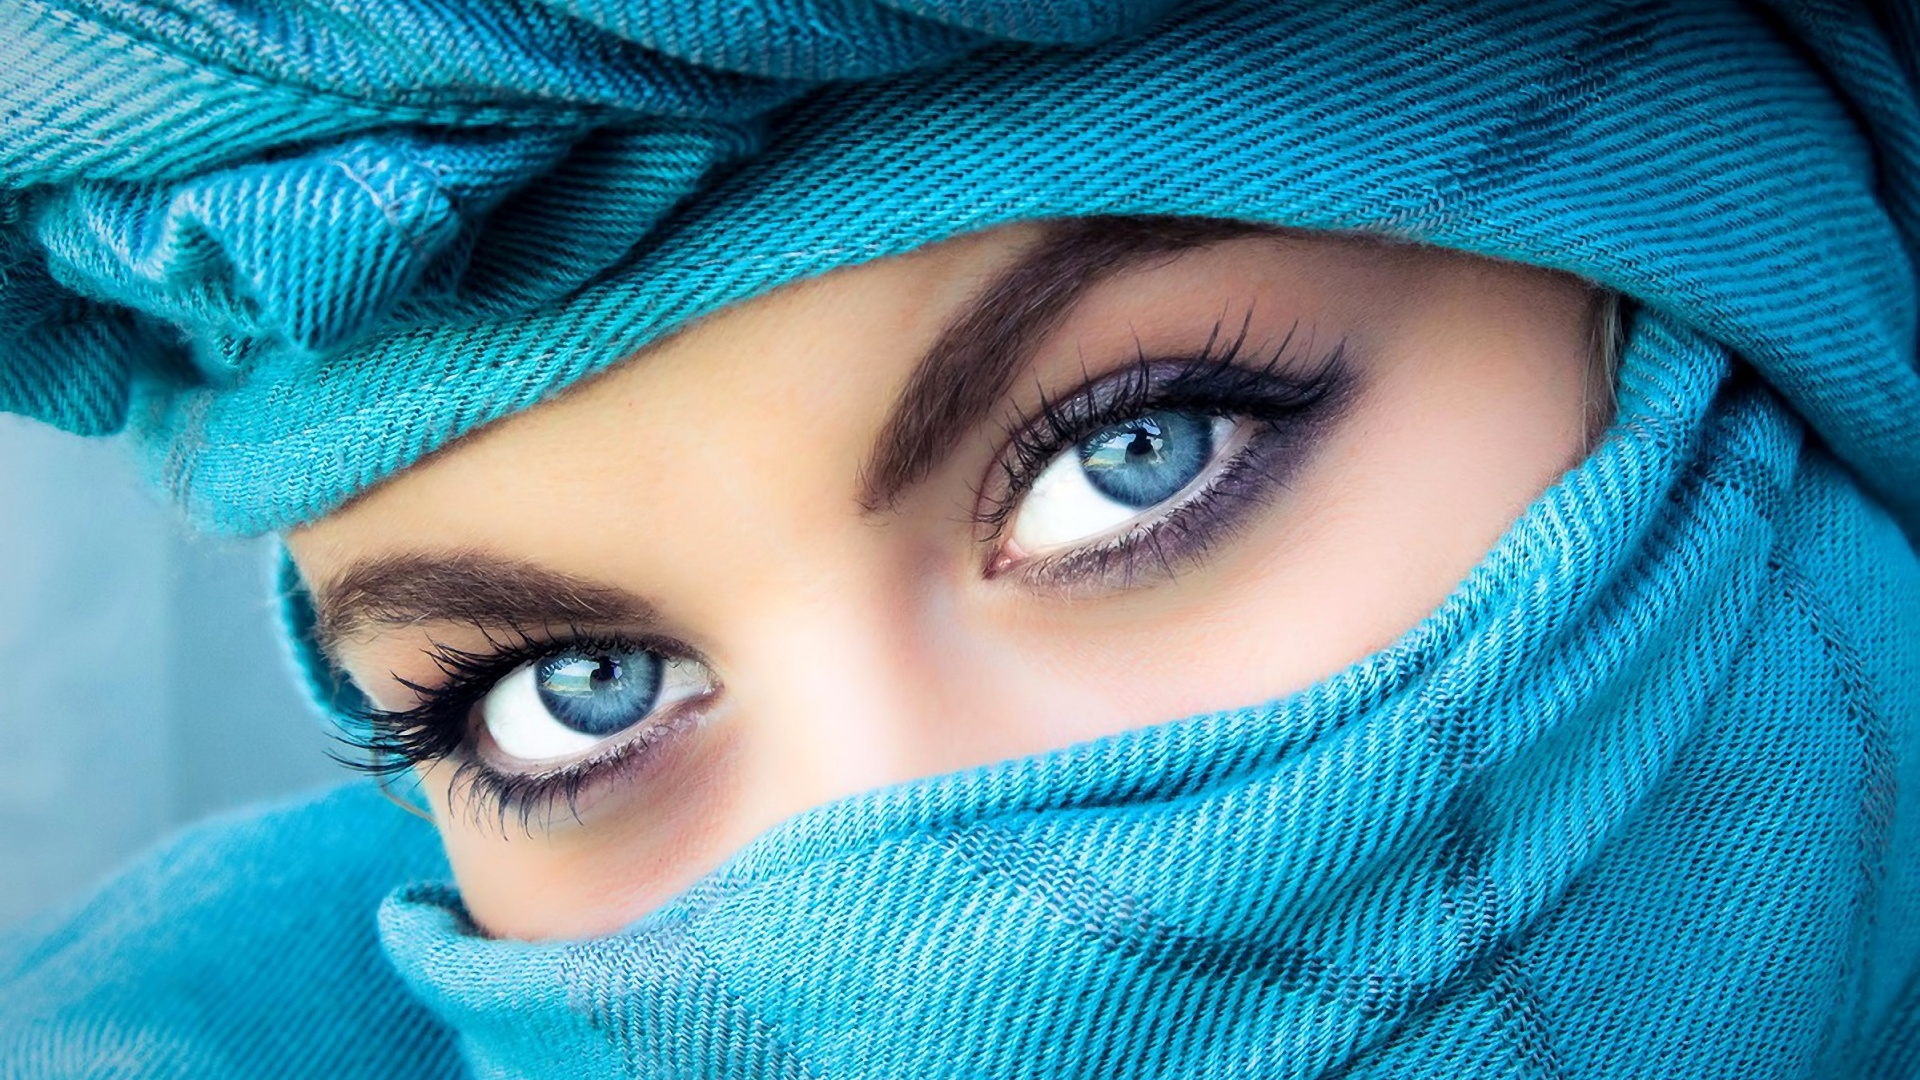 HD Wallpapers Of Beautiful Eyes